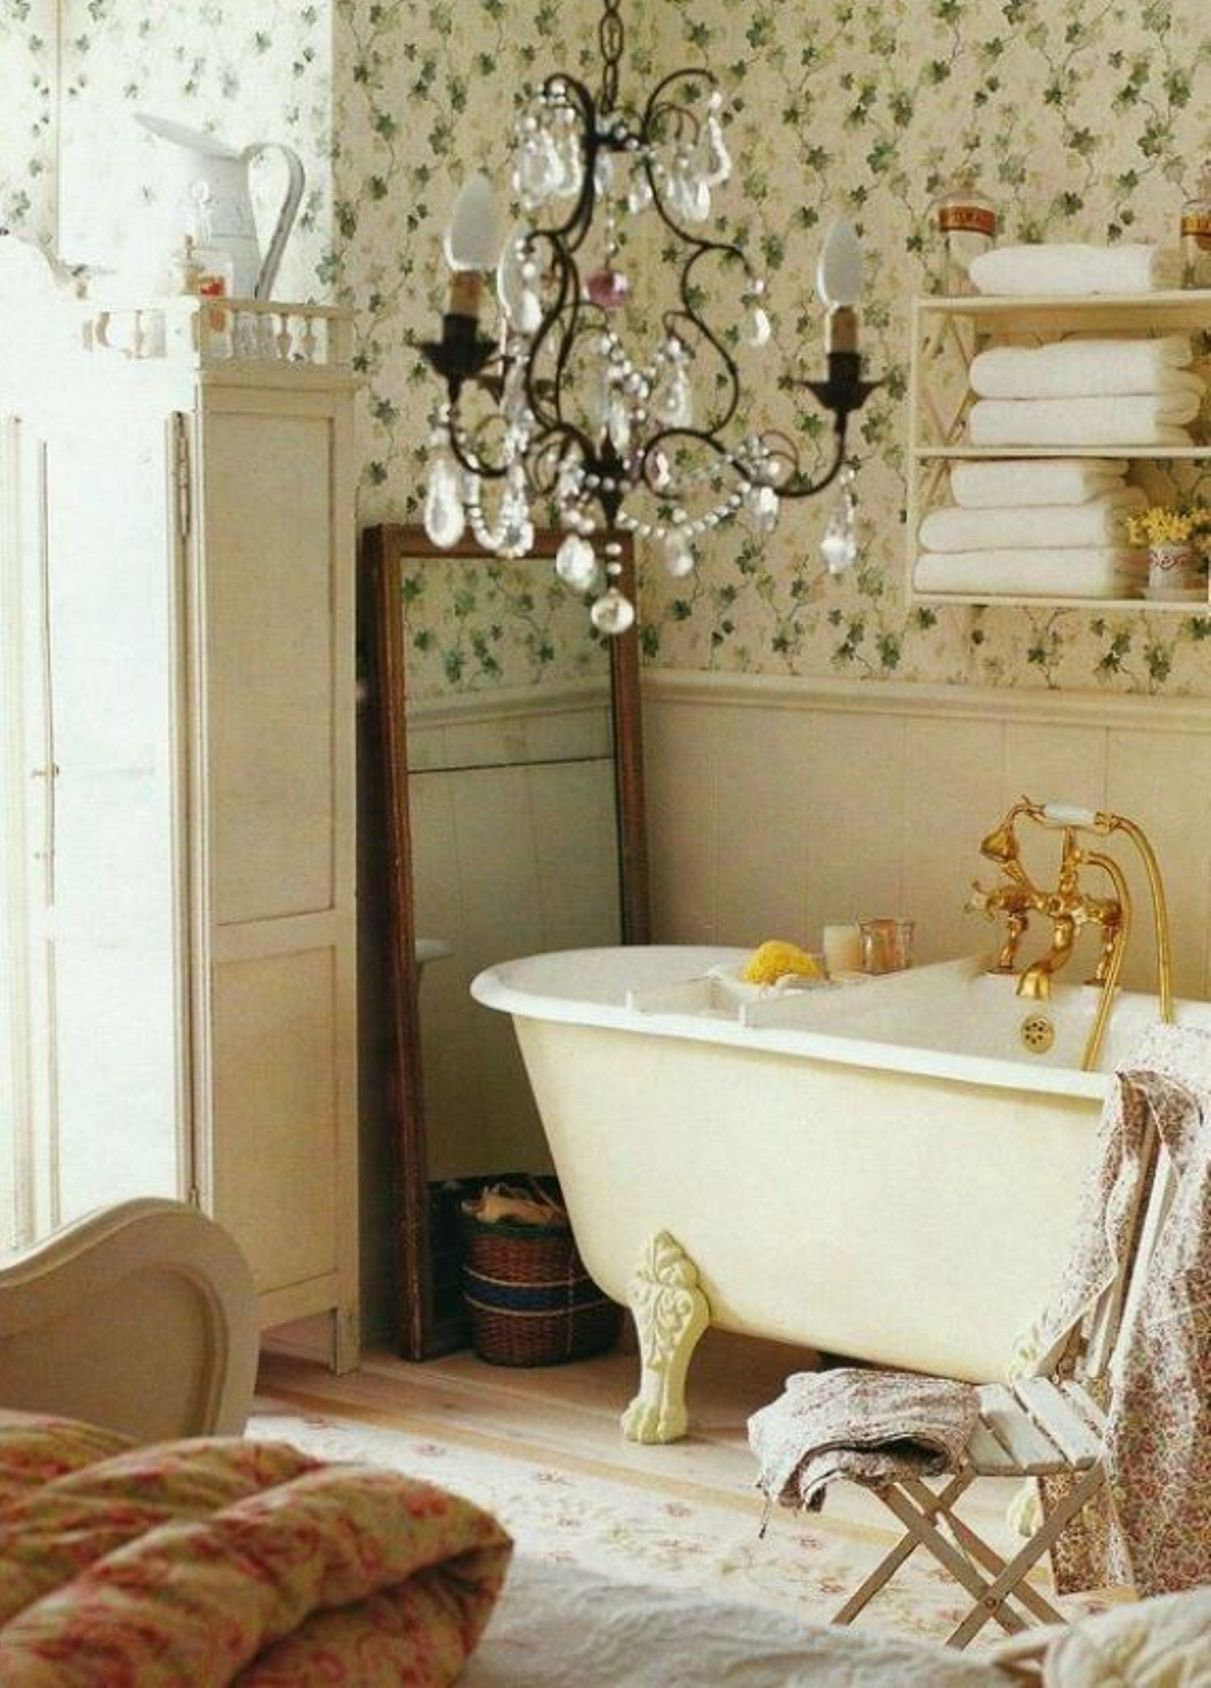 30 Shabby Chic Bathroom Design Ideas To Get Inspired